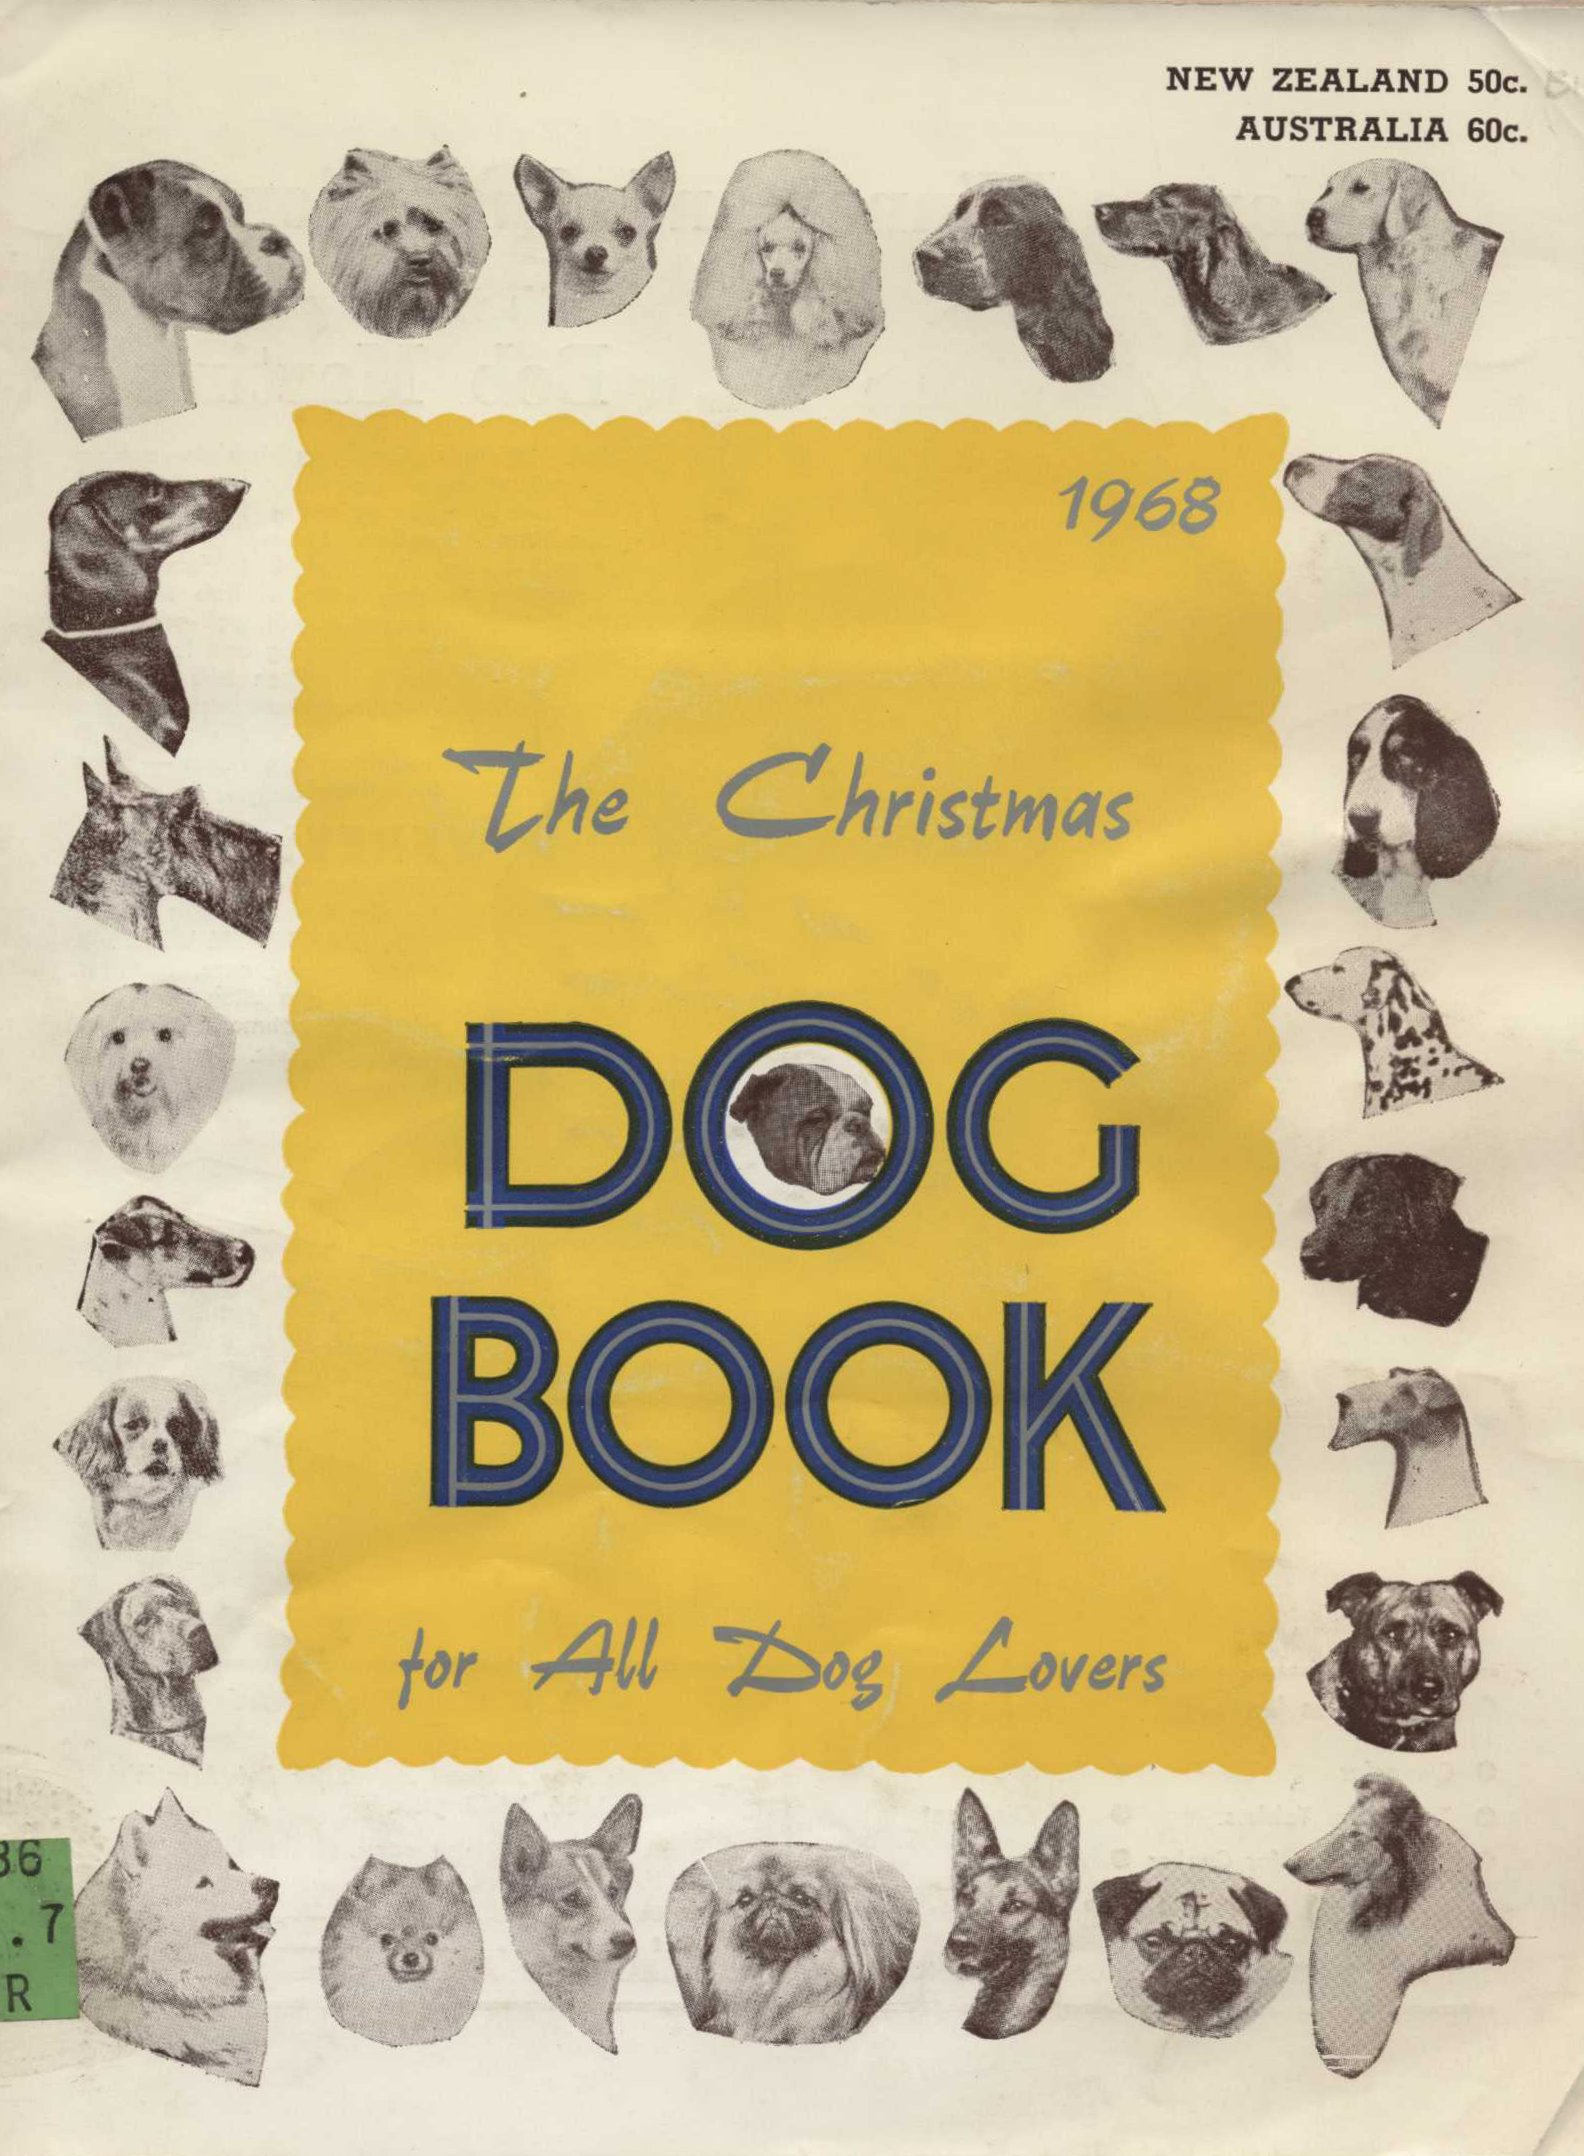 The Christmas dog book for all dog lovers. 1968. Palmerston North: N.Z. Kennel Gazette Ltd., 1967.